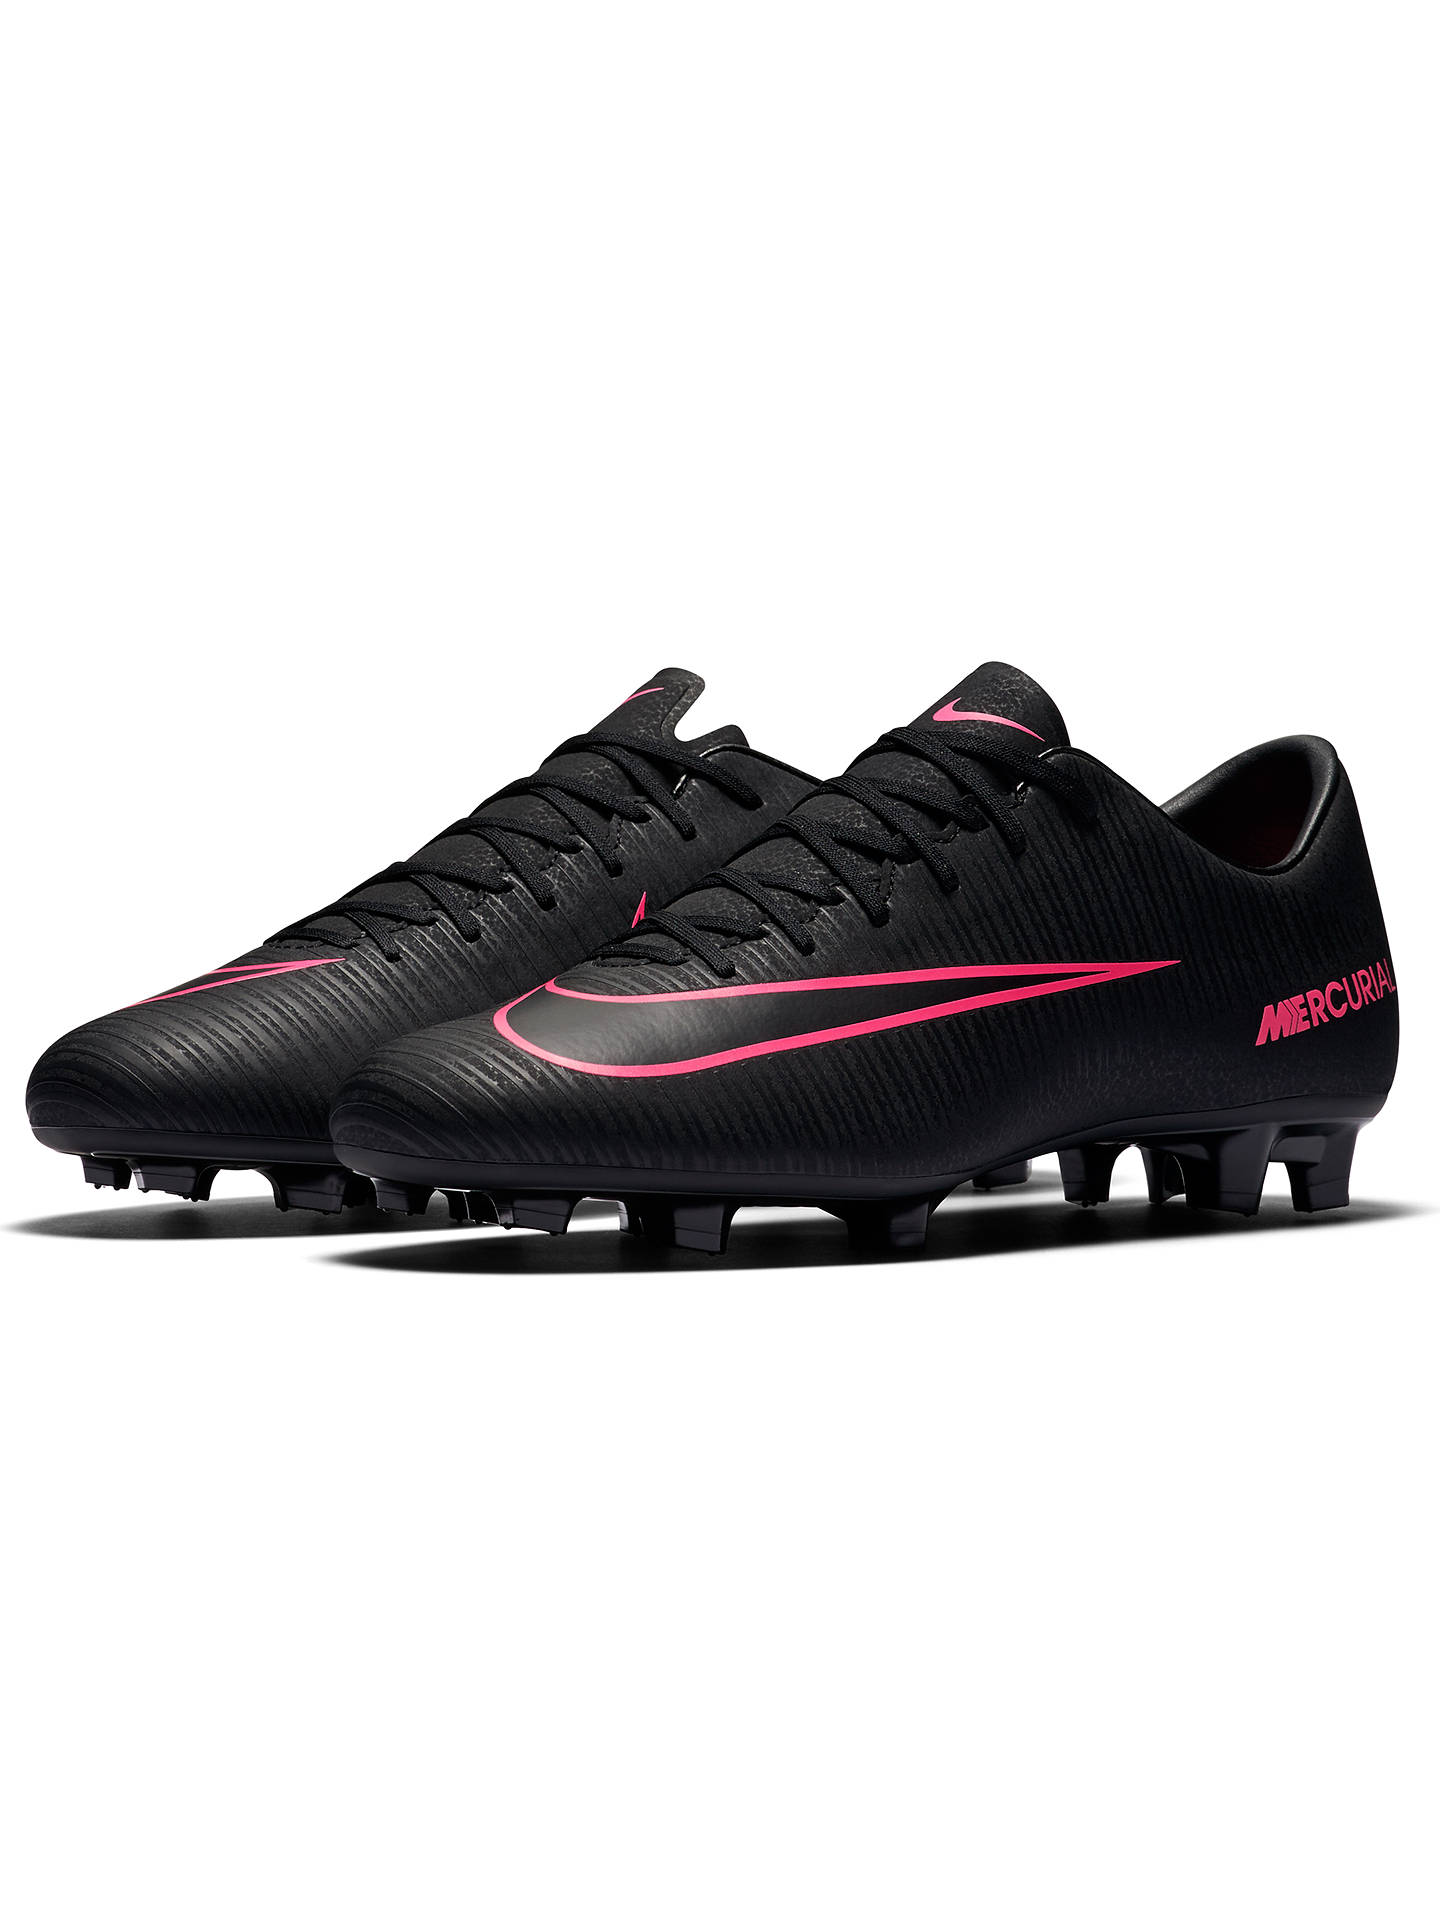 huge discount 631ab 6e446 Nike Mercurial Victory VI FG Men's Football Boots, Black ...